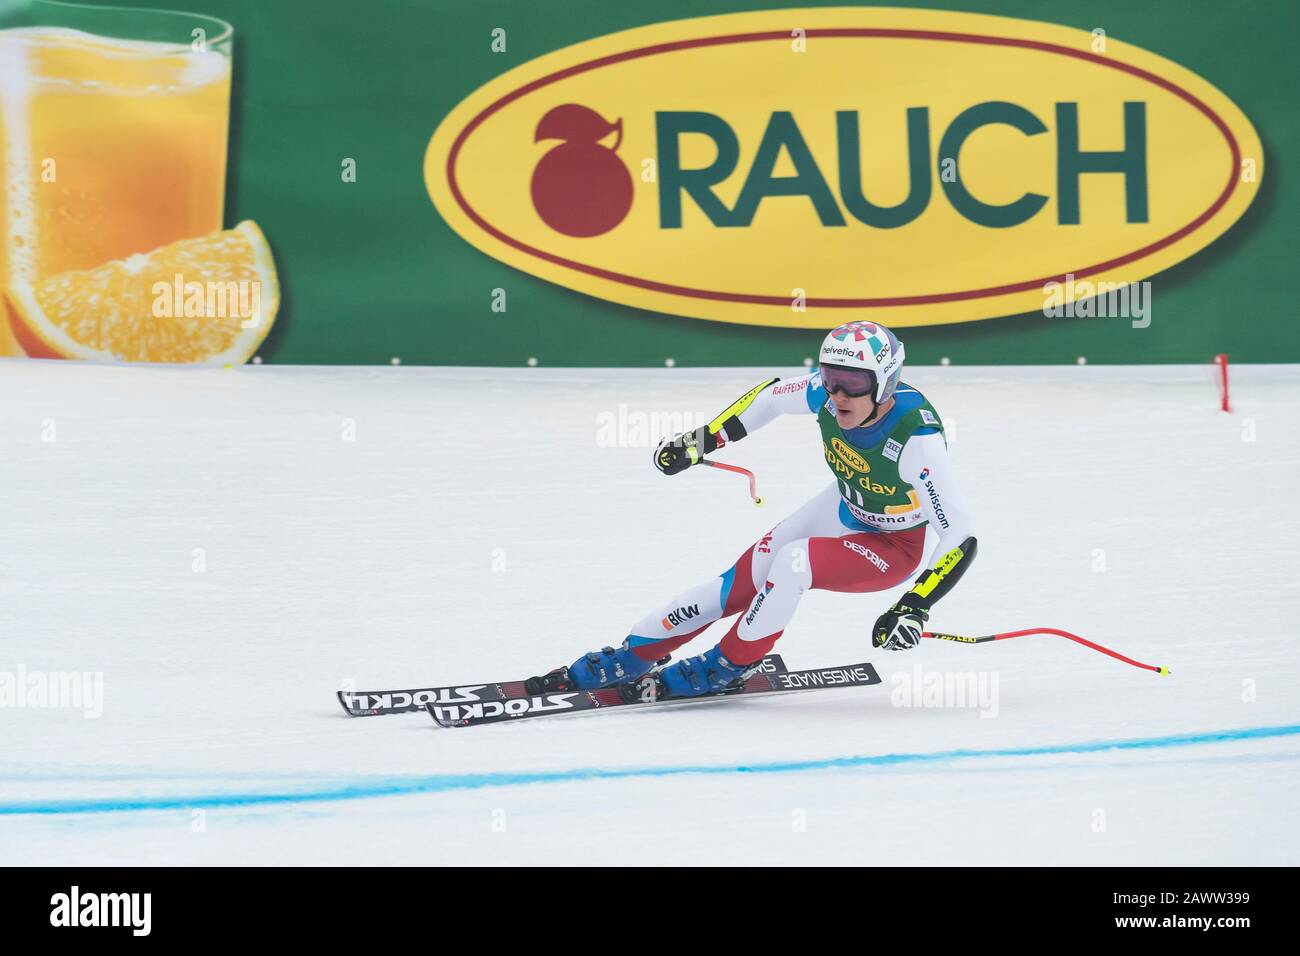 Val Gardena, Italy 20 December 2019. ODERMATT Marco (Sui) competing in the Audi Fis Alpine Skiing World Cup Men's Super-G Race  on the Saslong Course Stock Photo